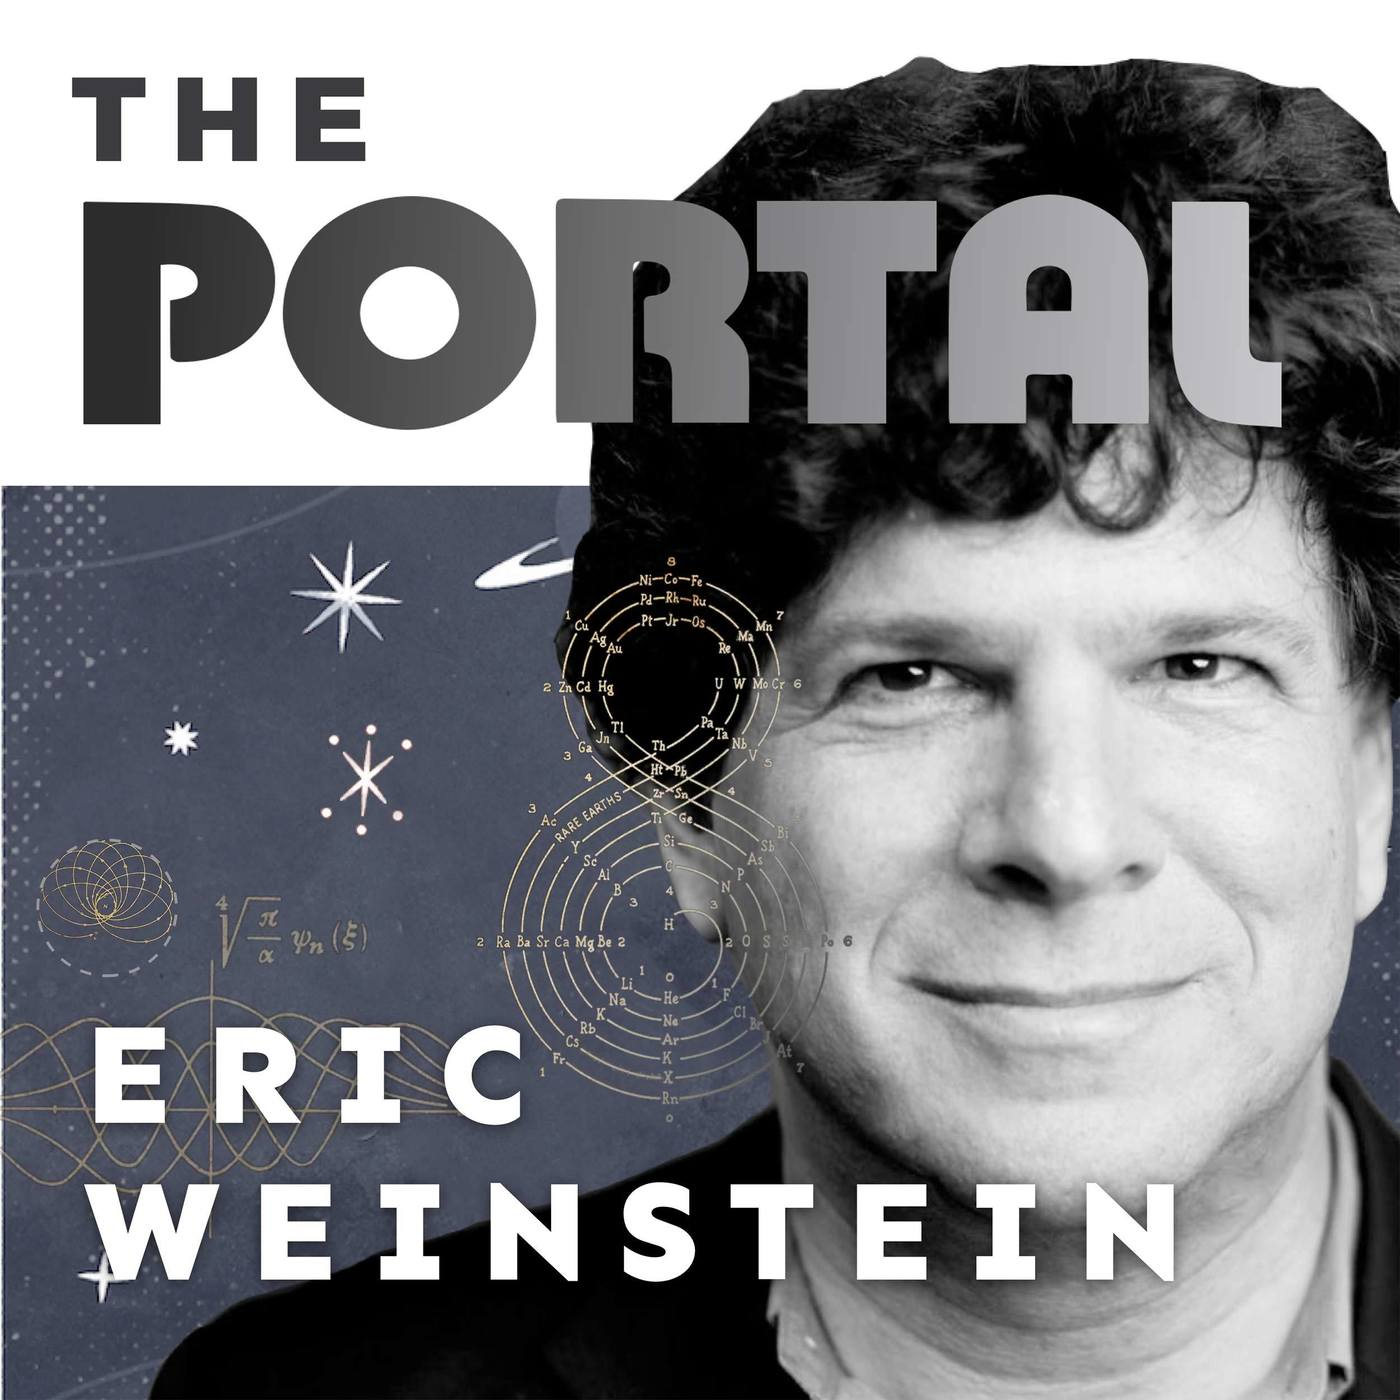 The-portal-podcast-cover-art.jpg